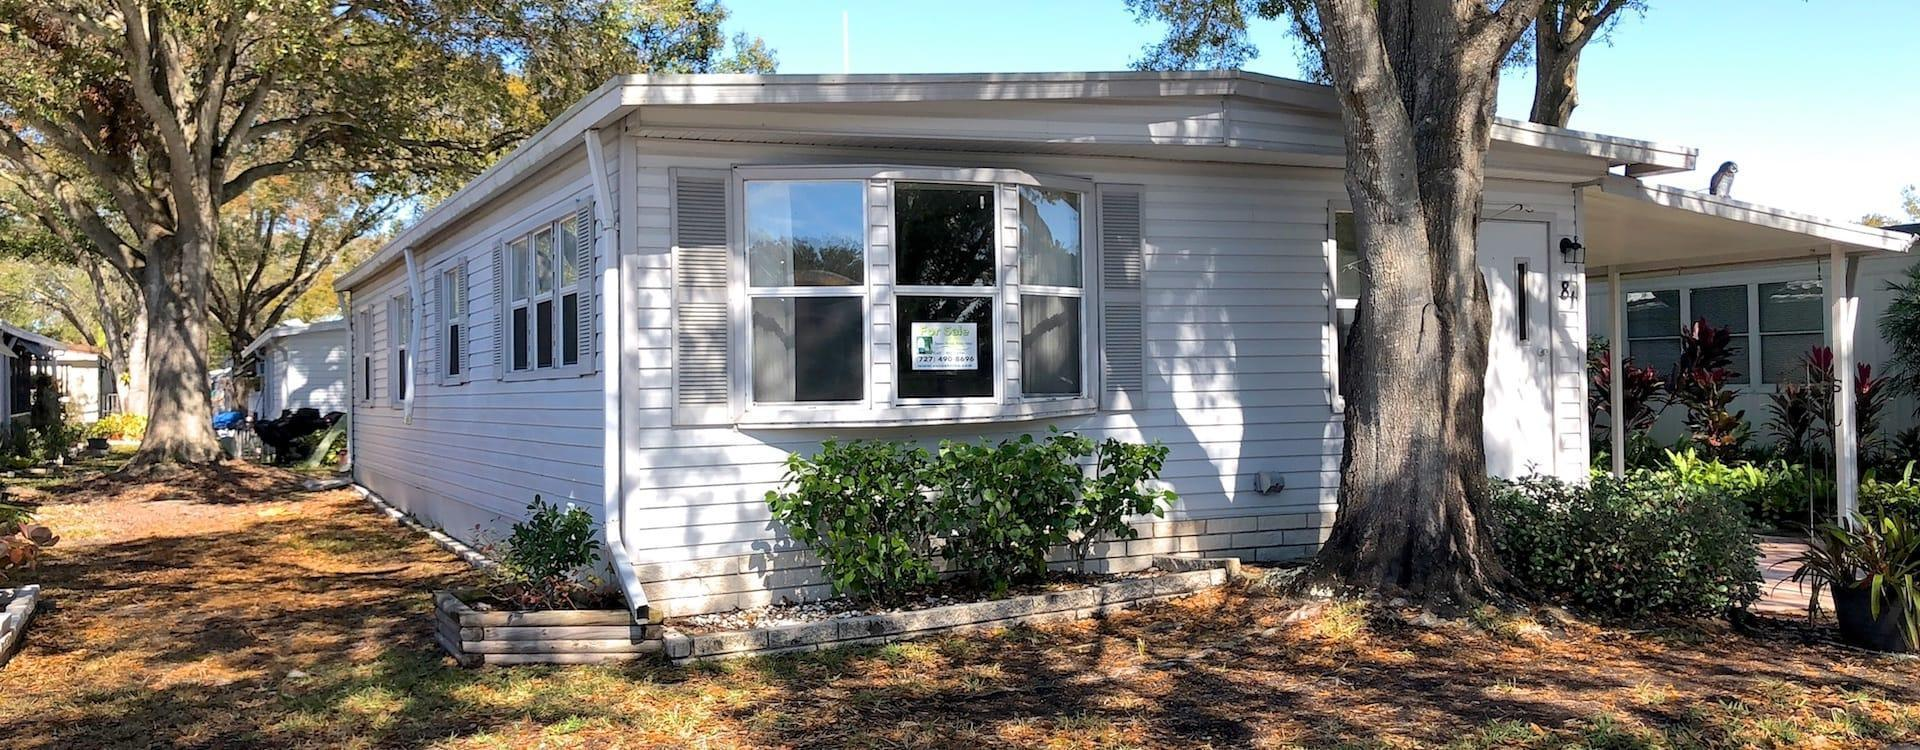 Waterfront Homes For Sale Pinellas County Fl